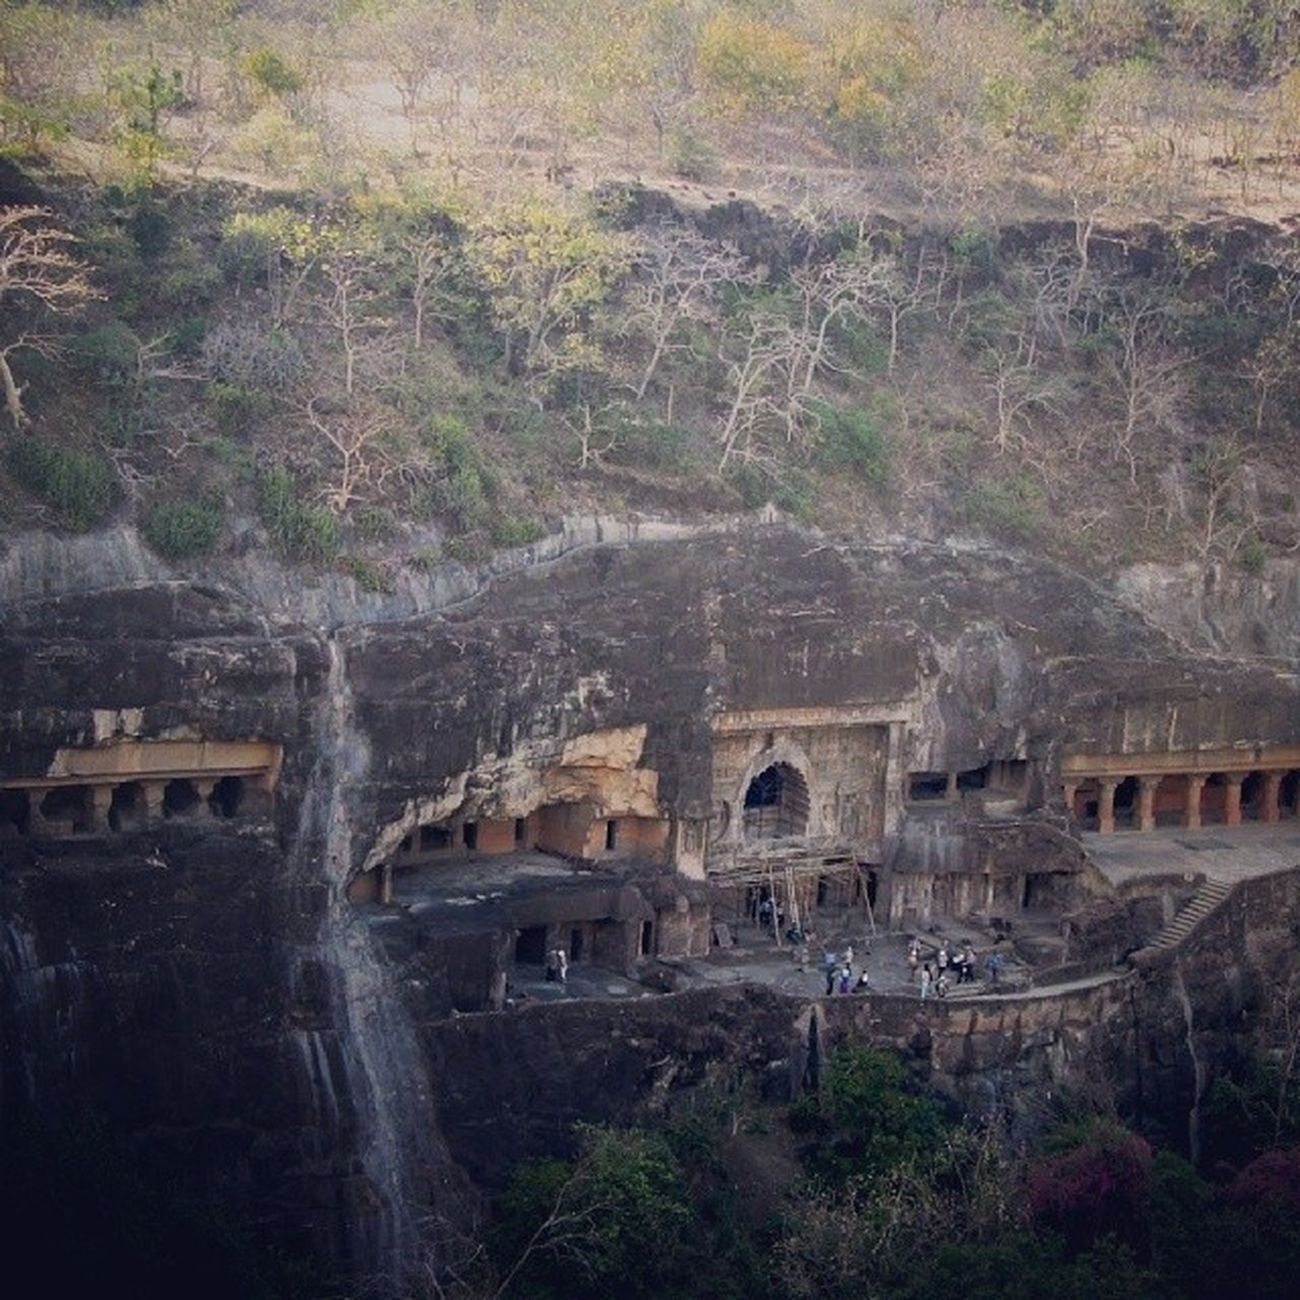 Ajanta Caves, Maharashtra, India. Ajanta Ajantacaves Worldheritagesite Worldheritage incredibleindia india wanderlust travel india maharashtra